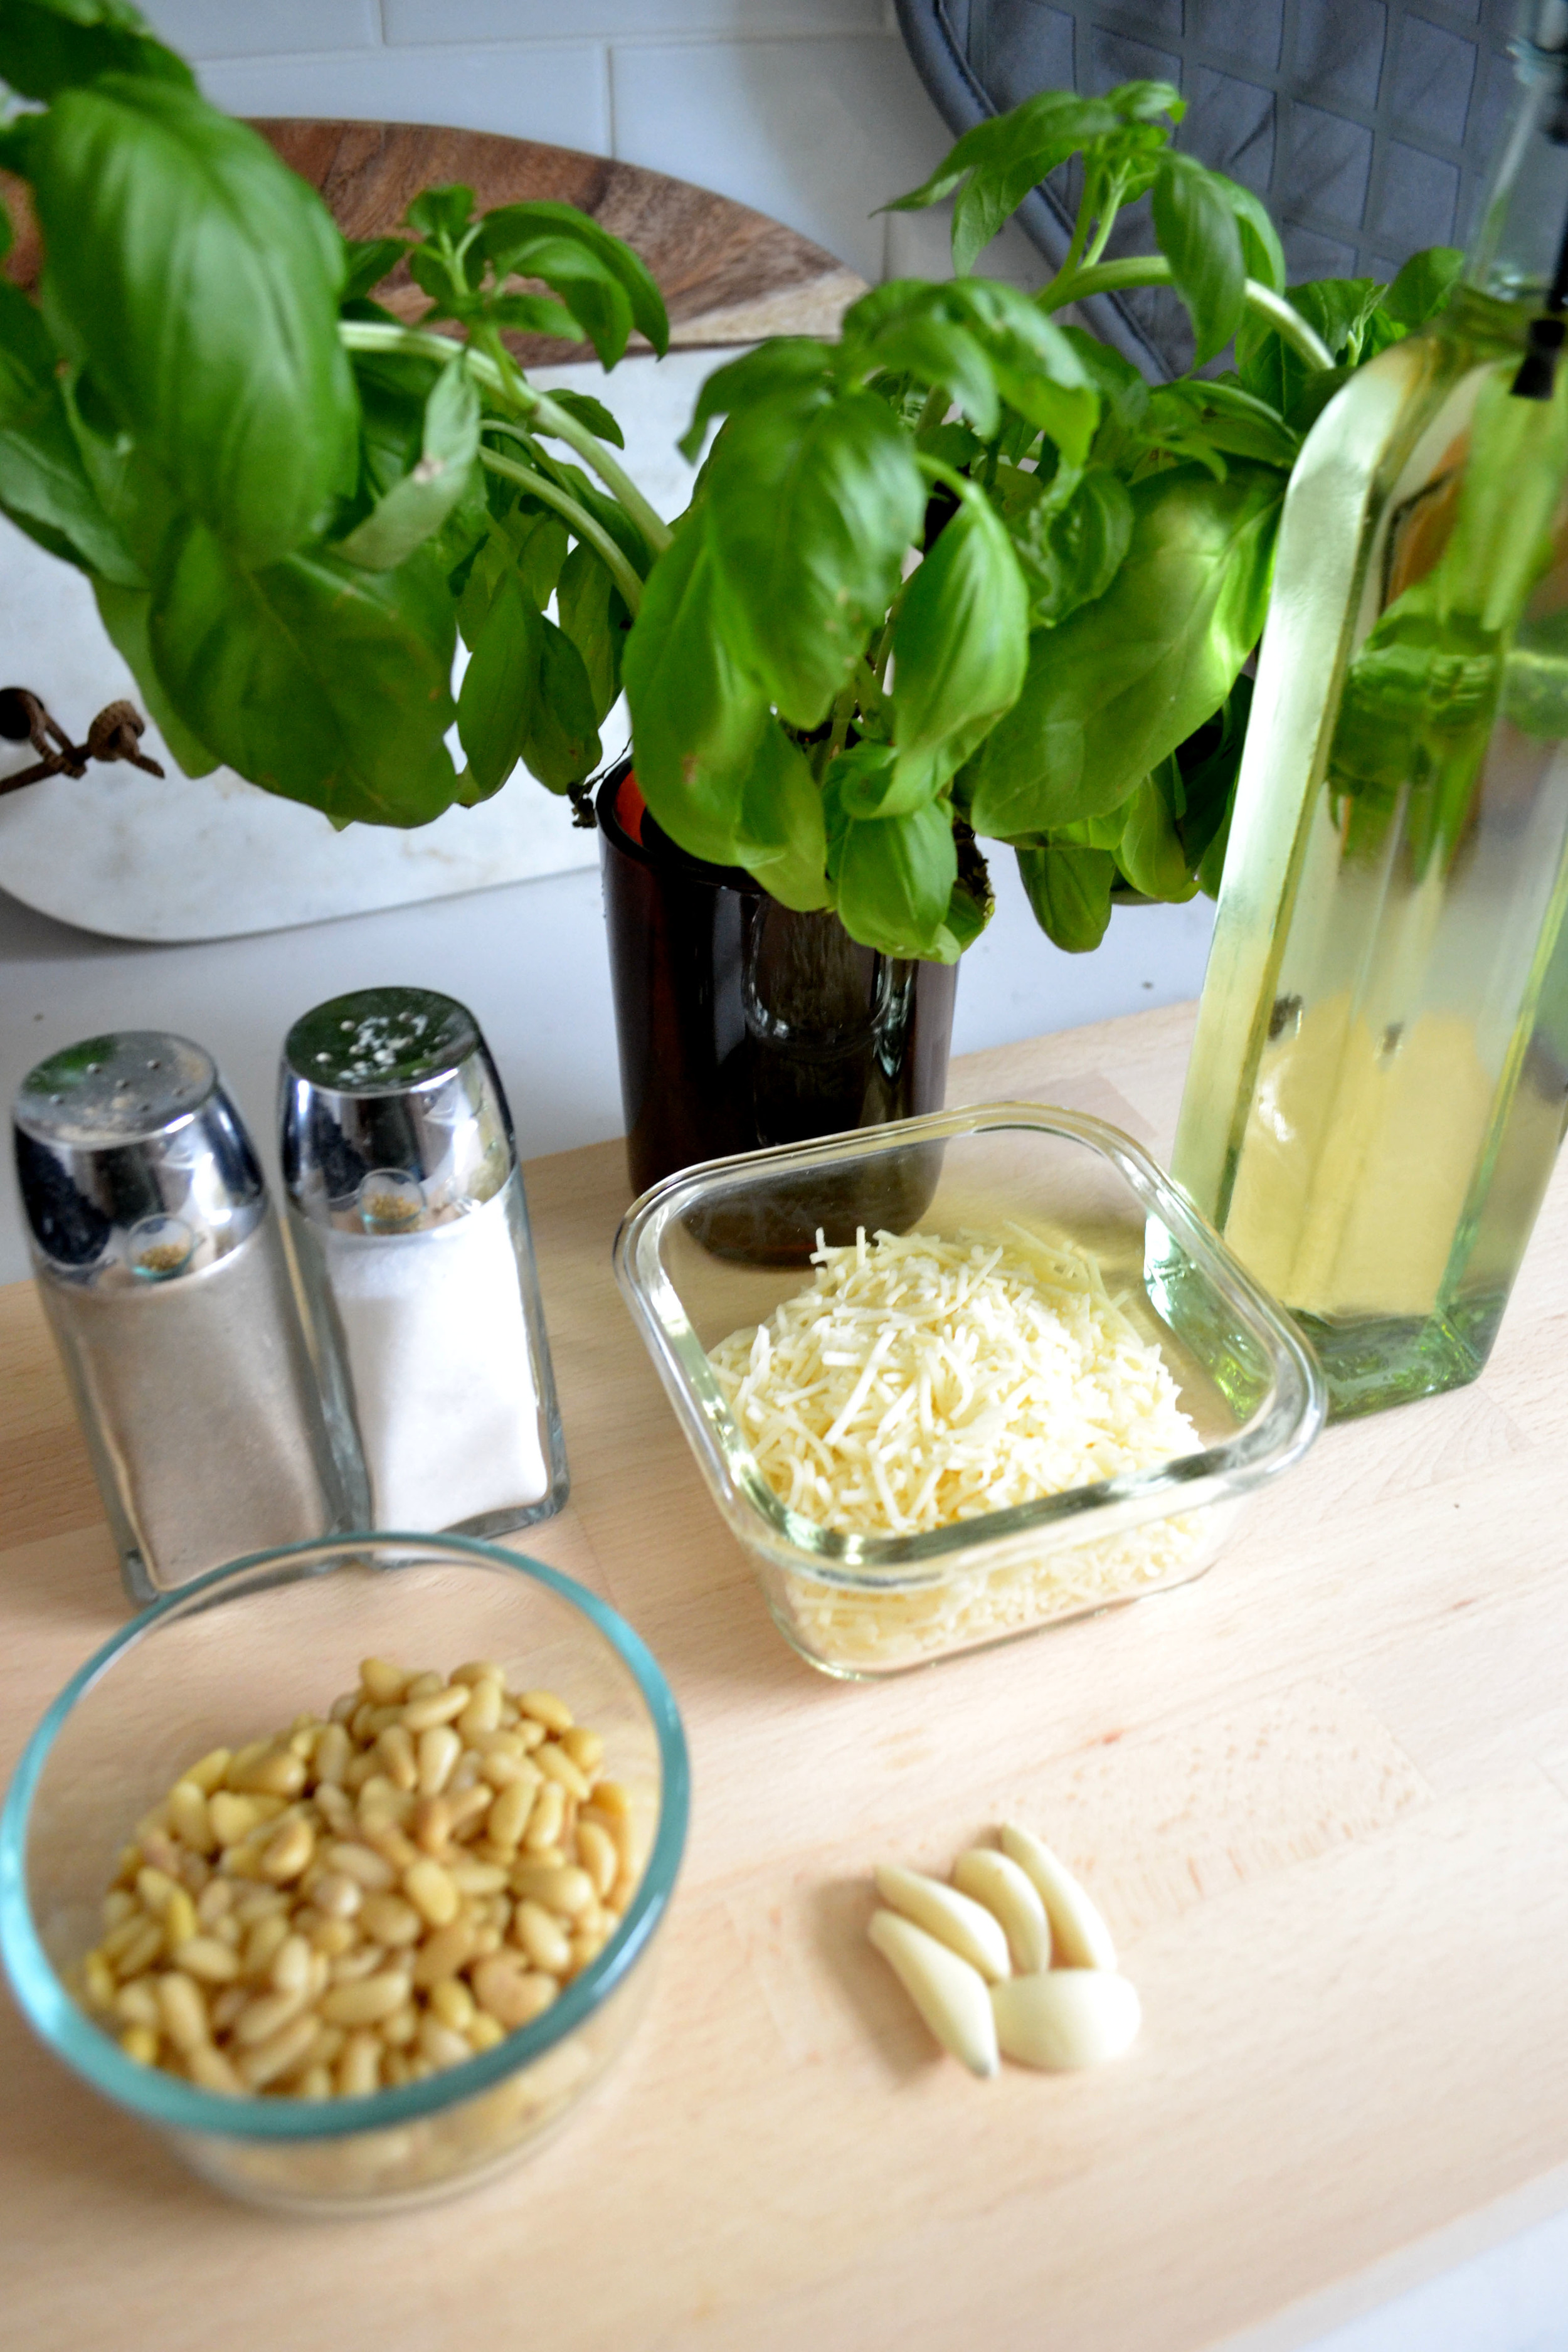 Add a variety of different ingredients to get the perfect pesto.